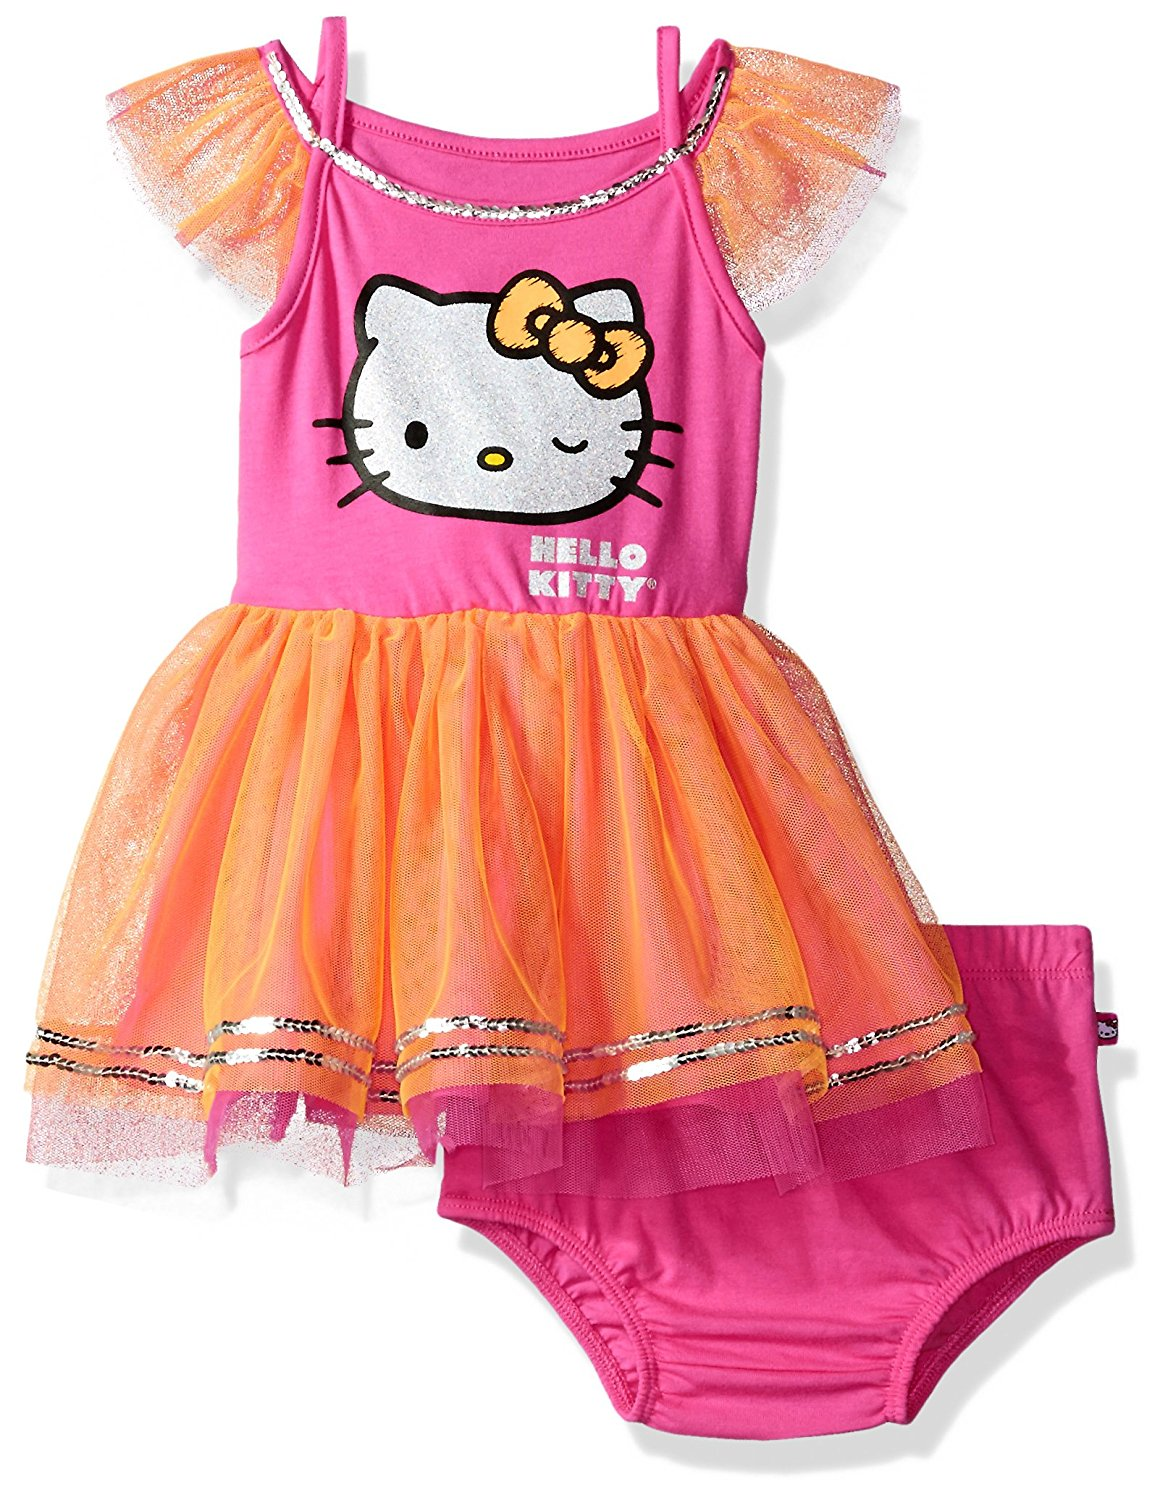 a04797f5e50e4 Get Quotations · Hello Kitty Toddler Girls  Embellished Tutu Dress